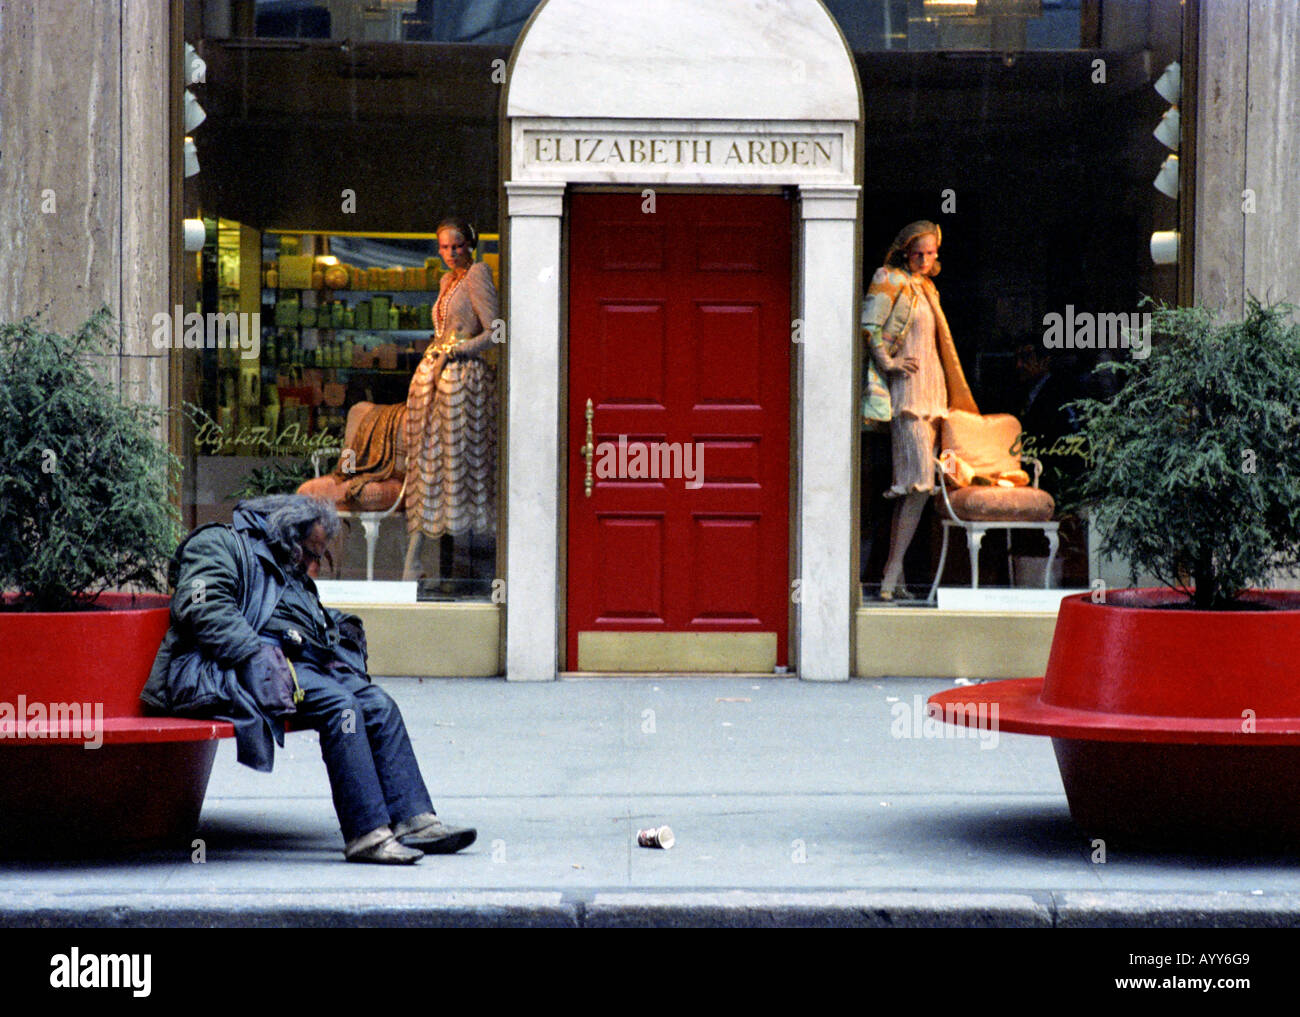 Rich Poor Contrast Usa Stock Photos & Rich Poor Contrast Usa Stock ...